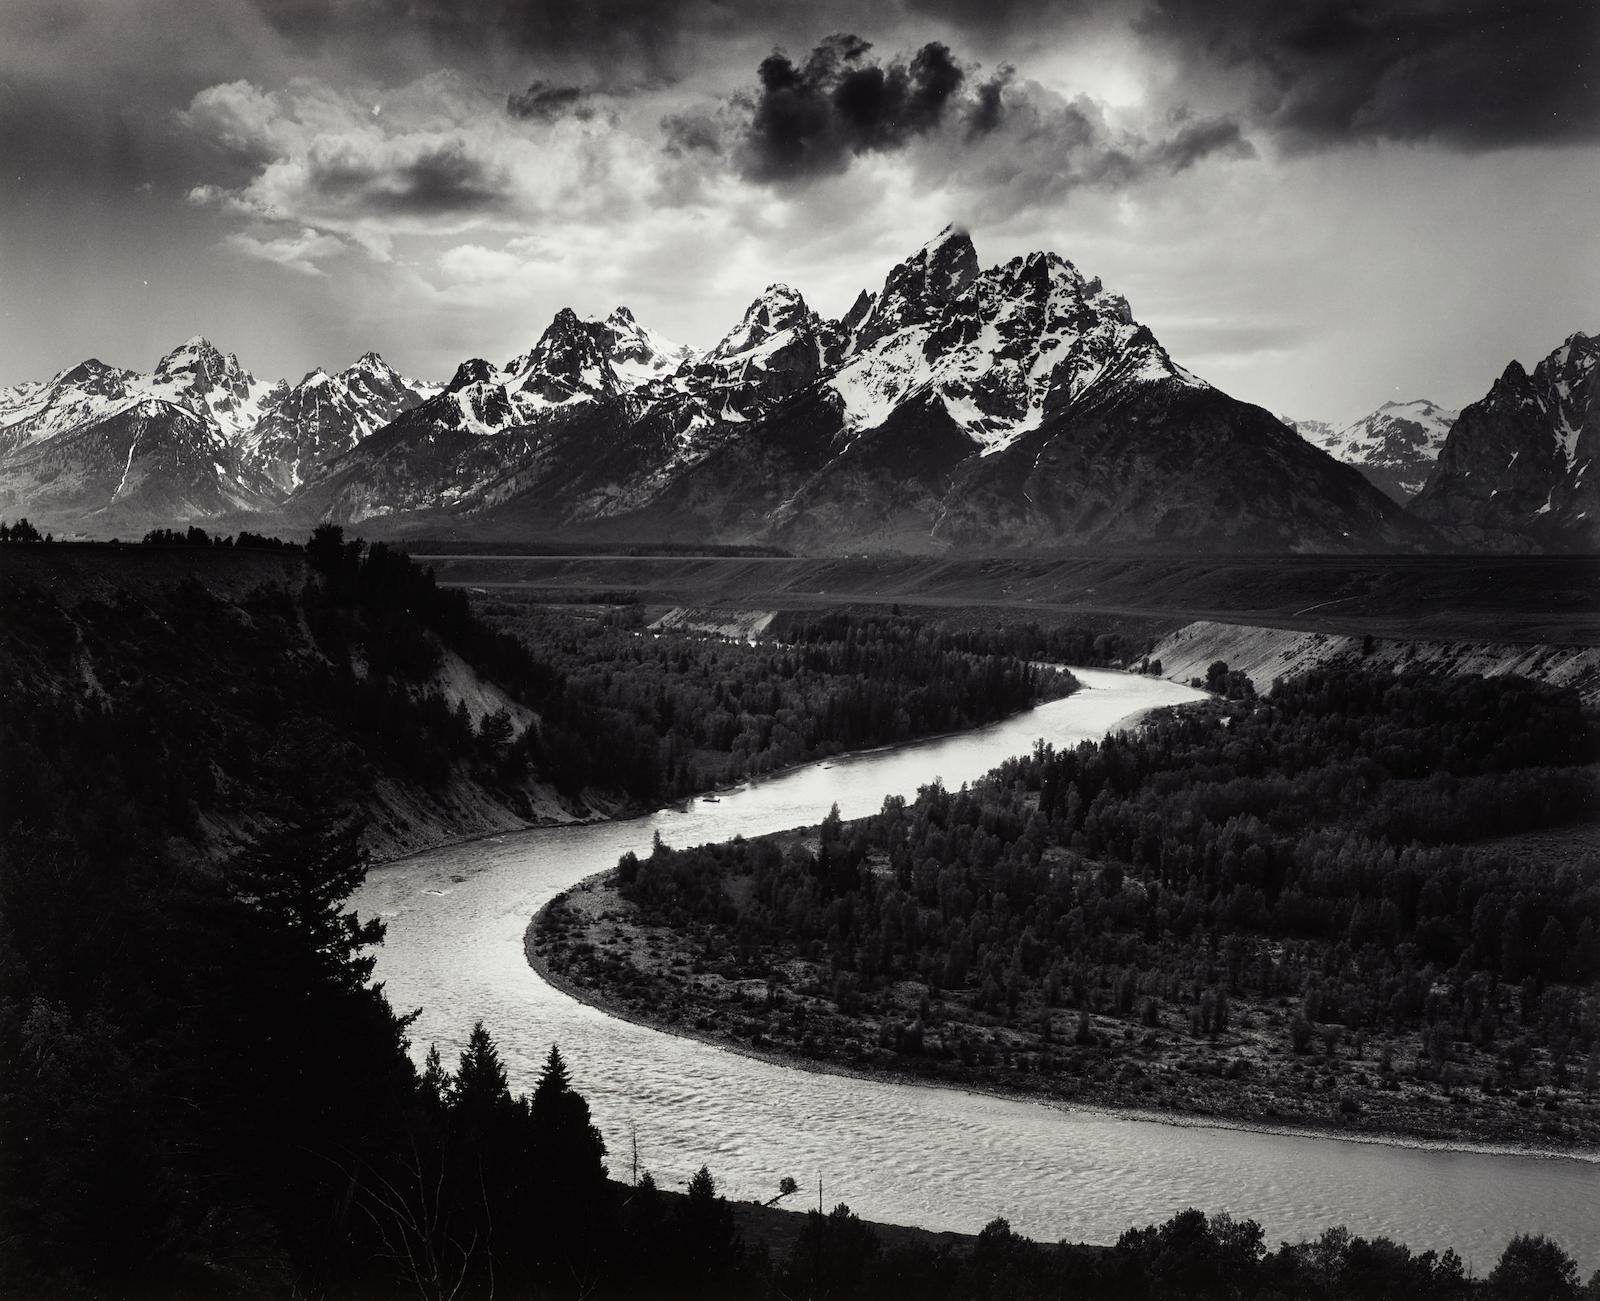 Ansel Adams-The Grand Tetons And The Snake River, Grand Teton National Park, Wyoming-1942